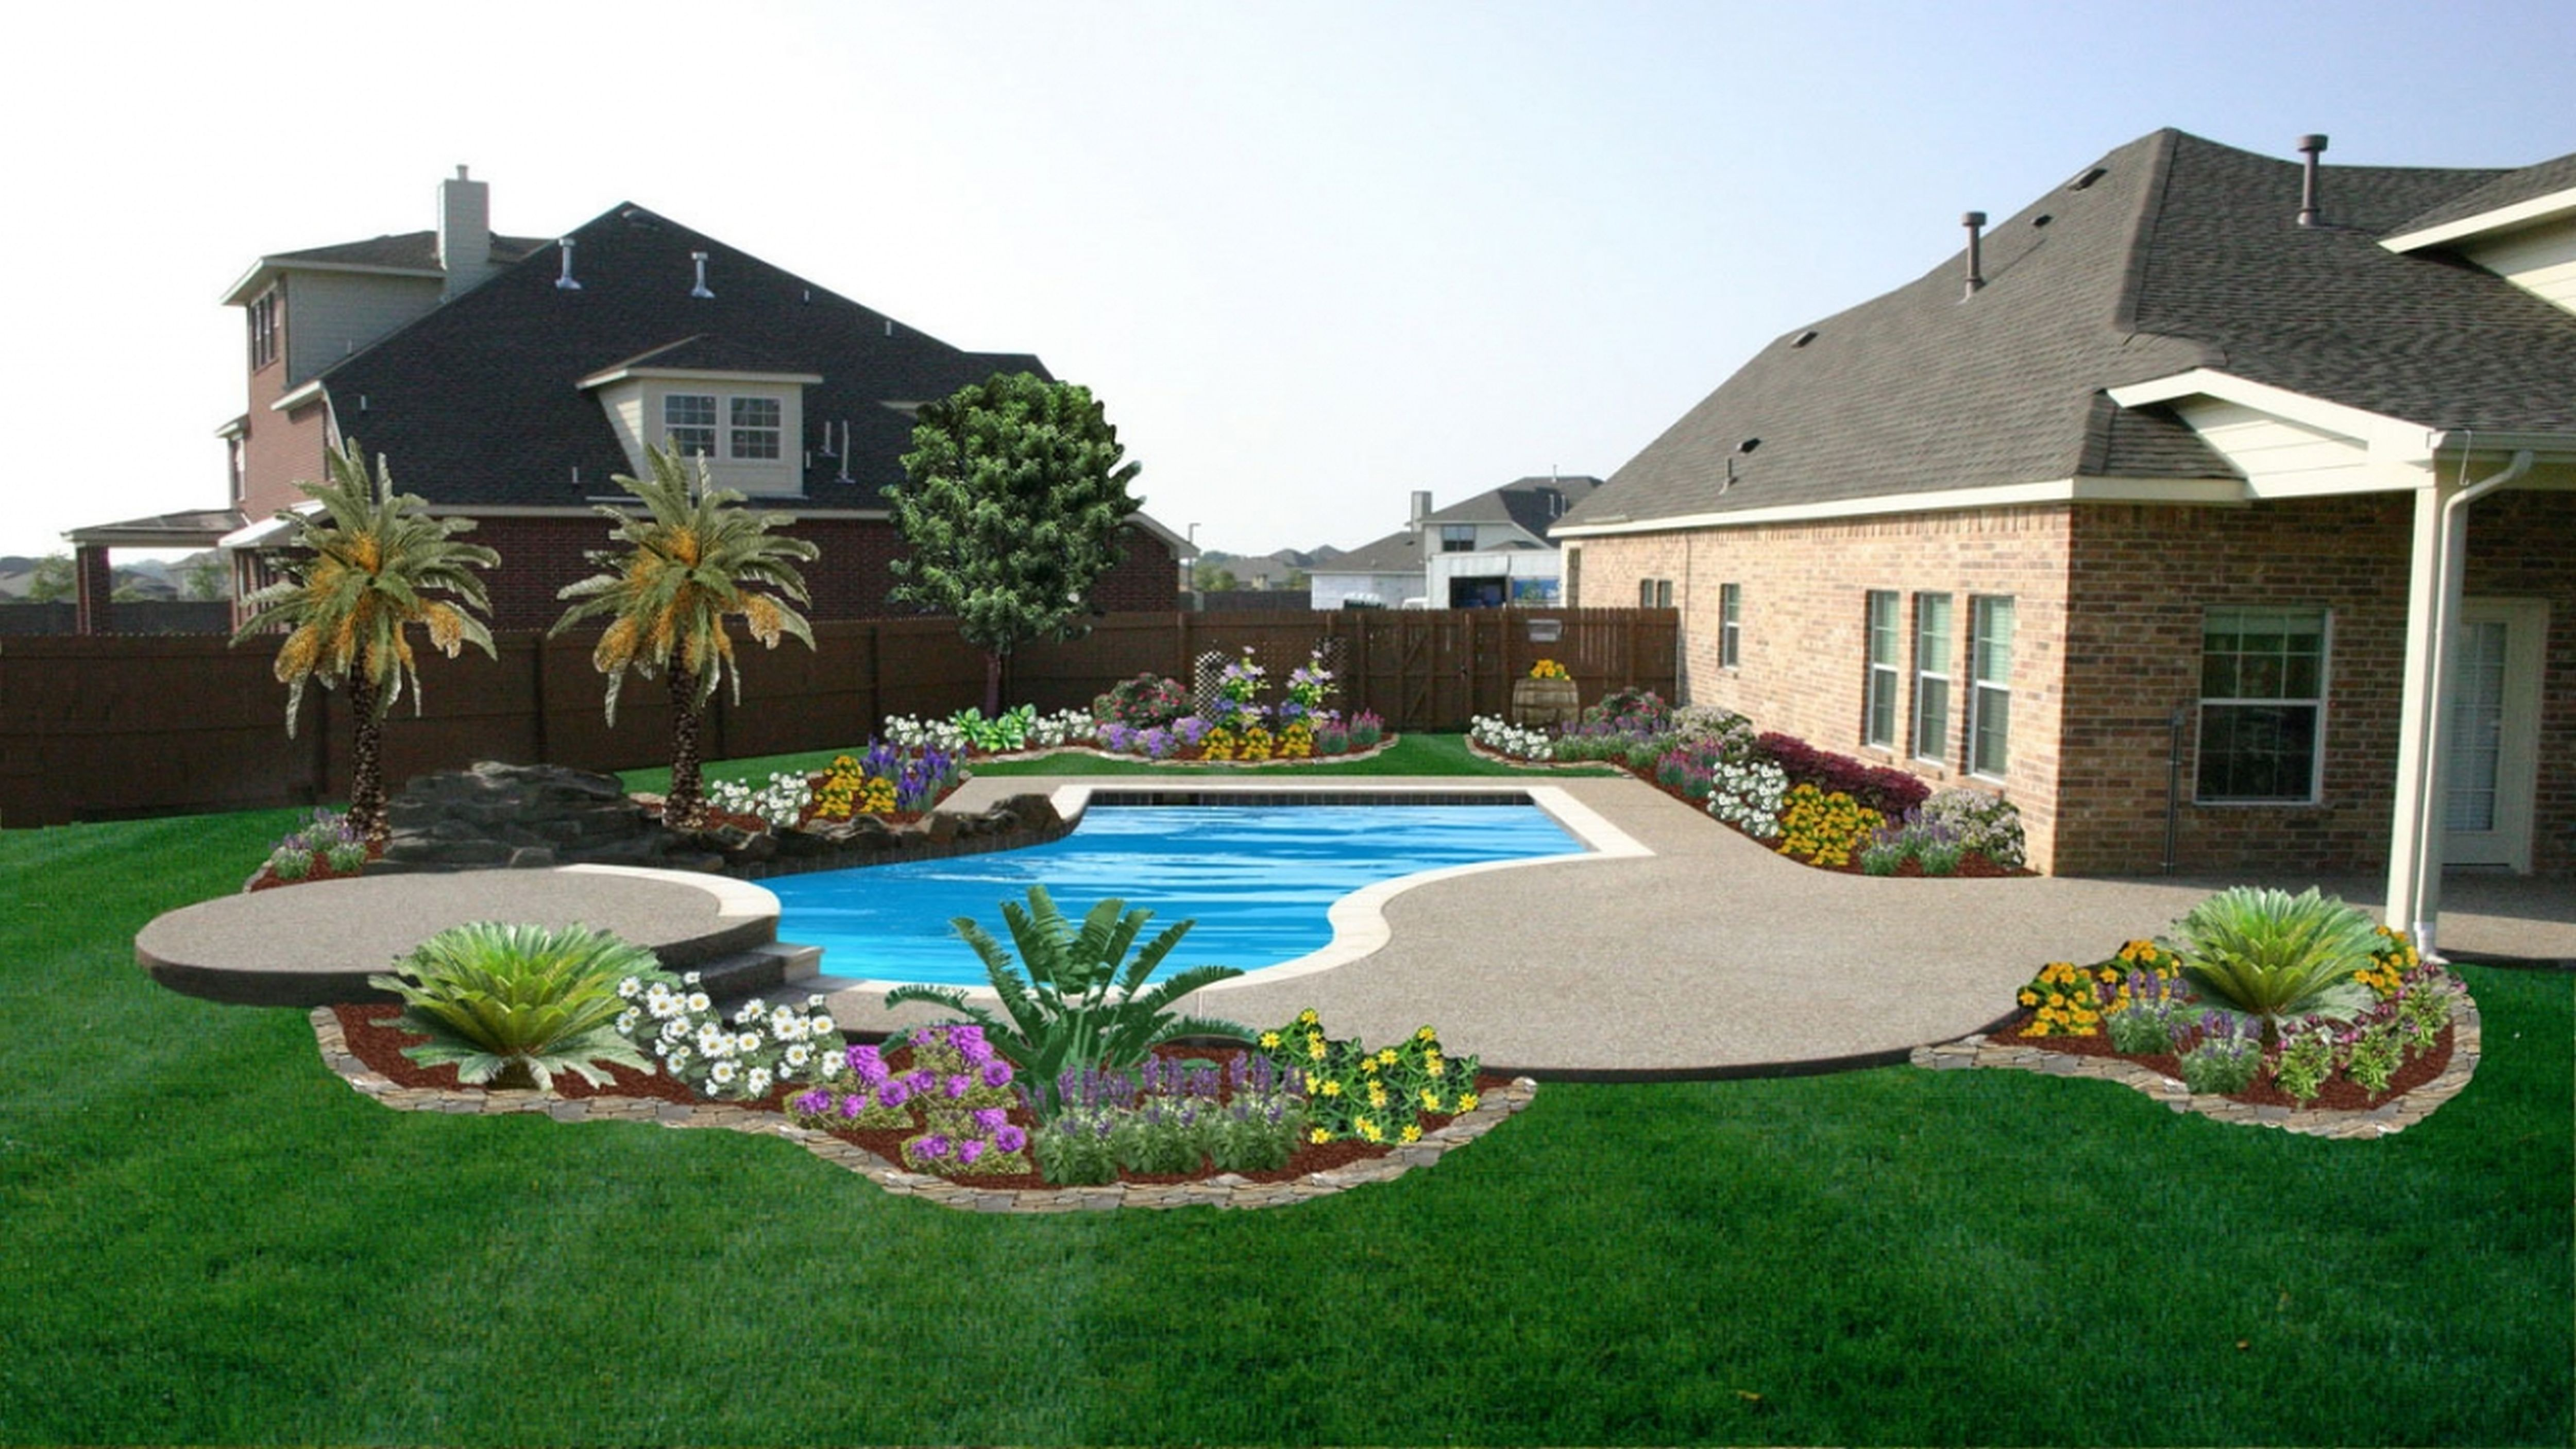 pool landscaping ideas to inspire you how to make the garden look